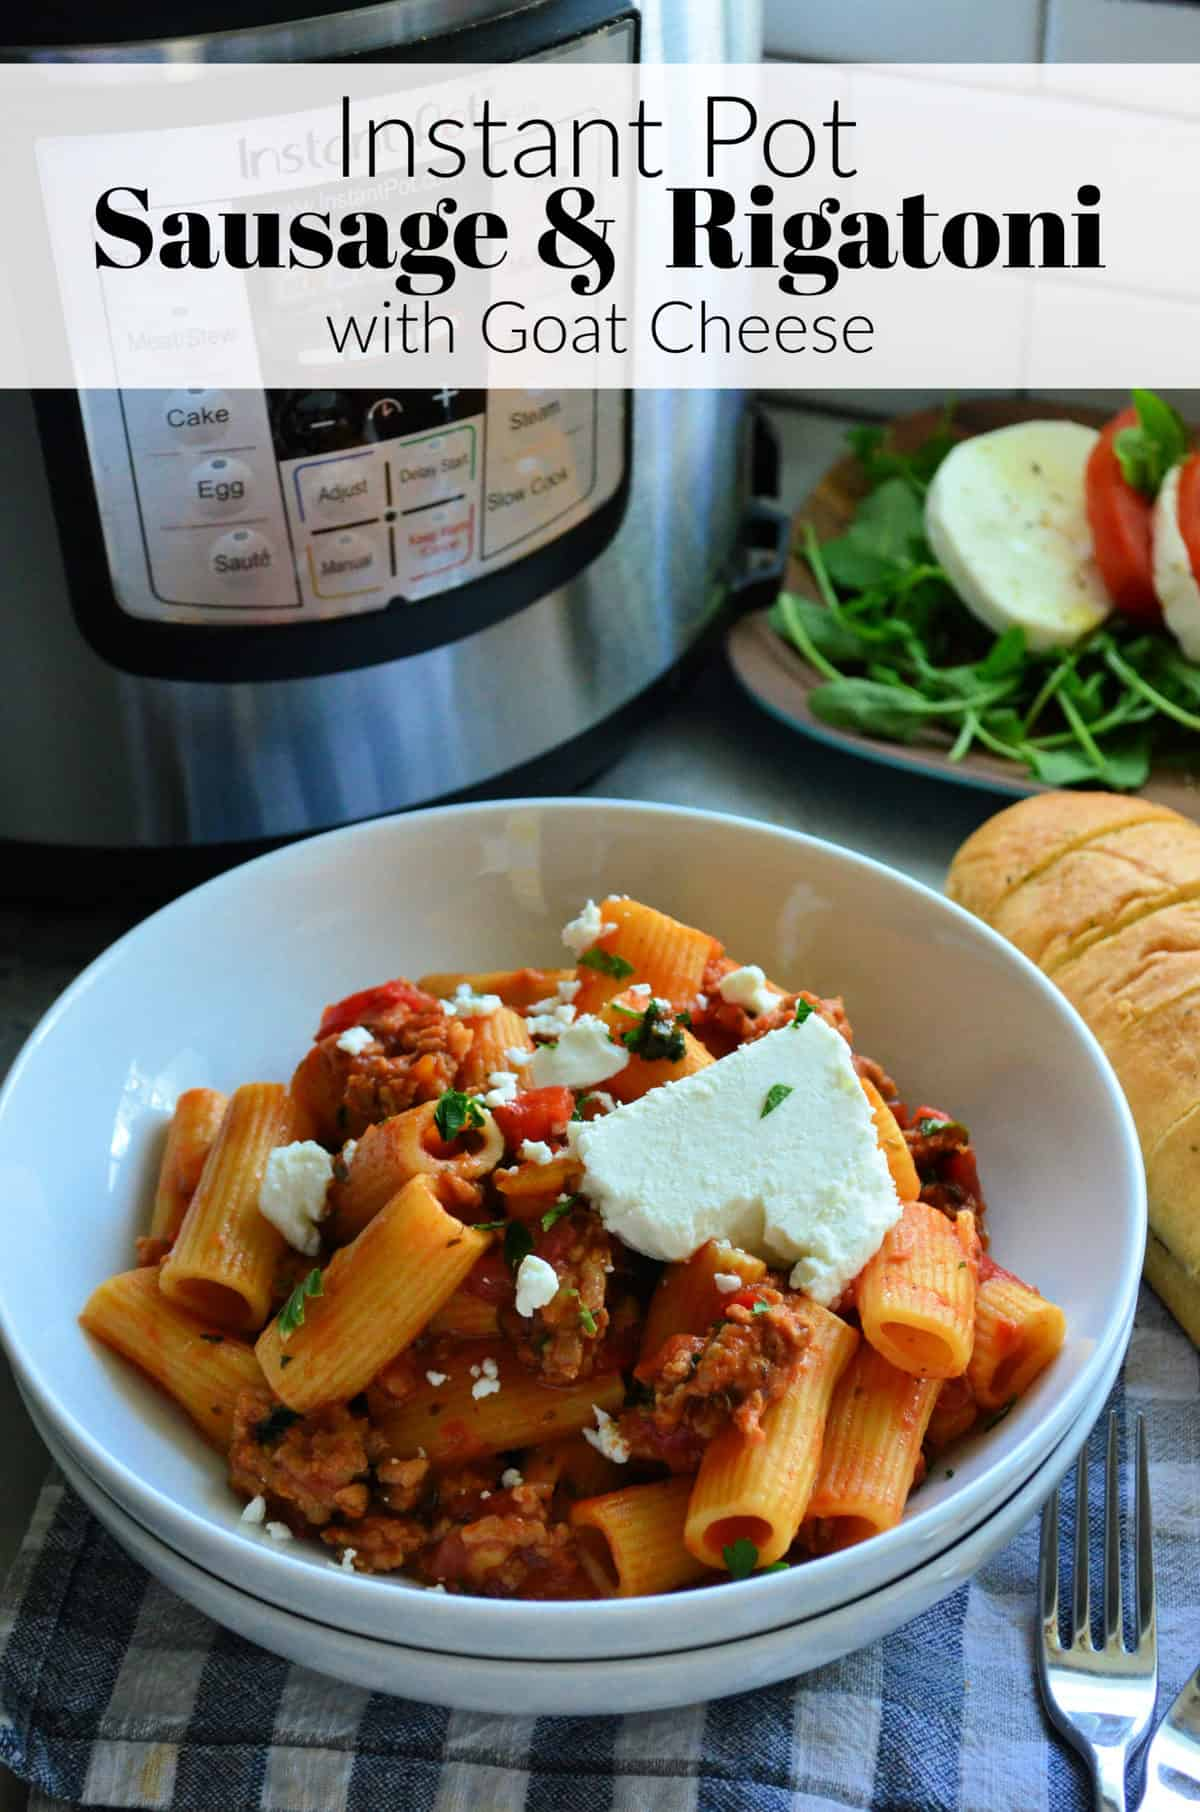 Plated Rigatoni noodles with meaty red sauce, basil, and cheese in front of instant pot with title text.